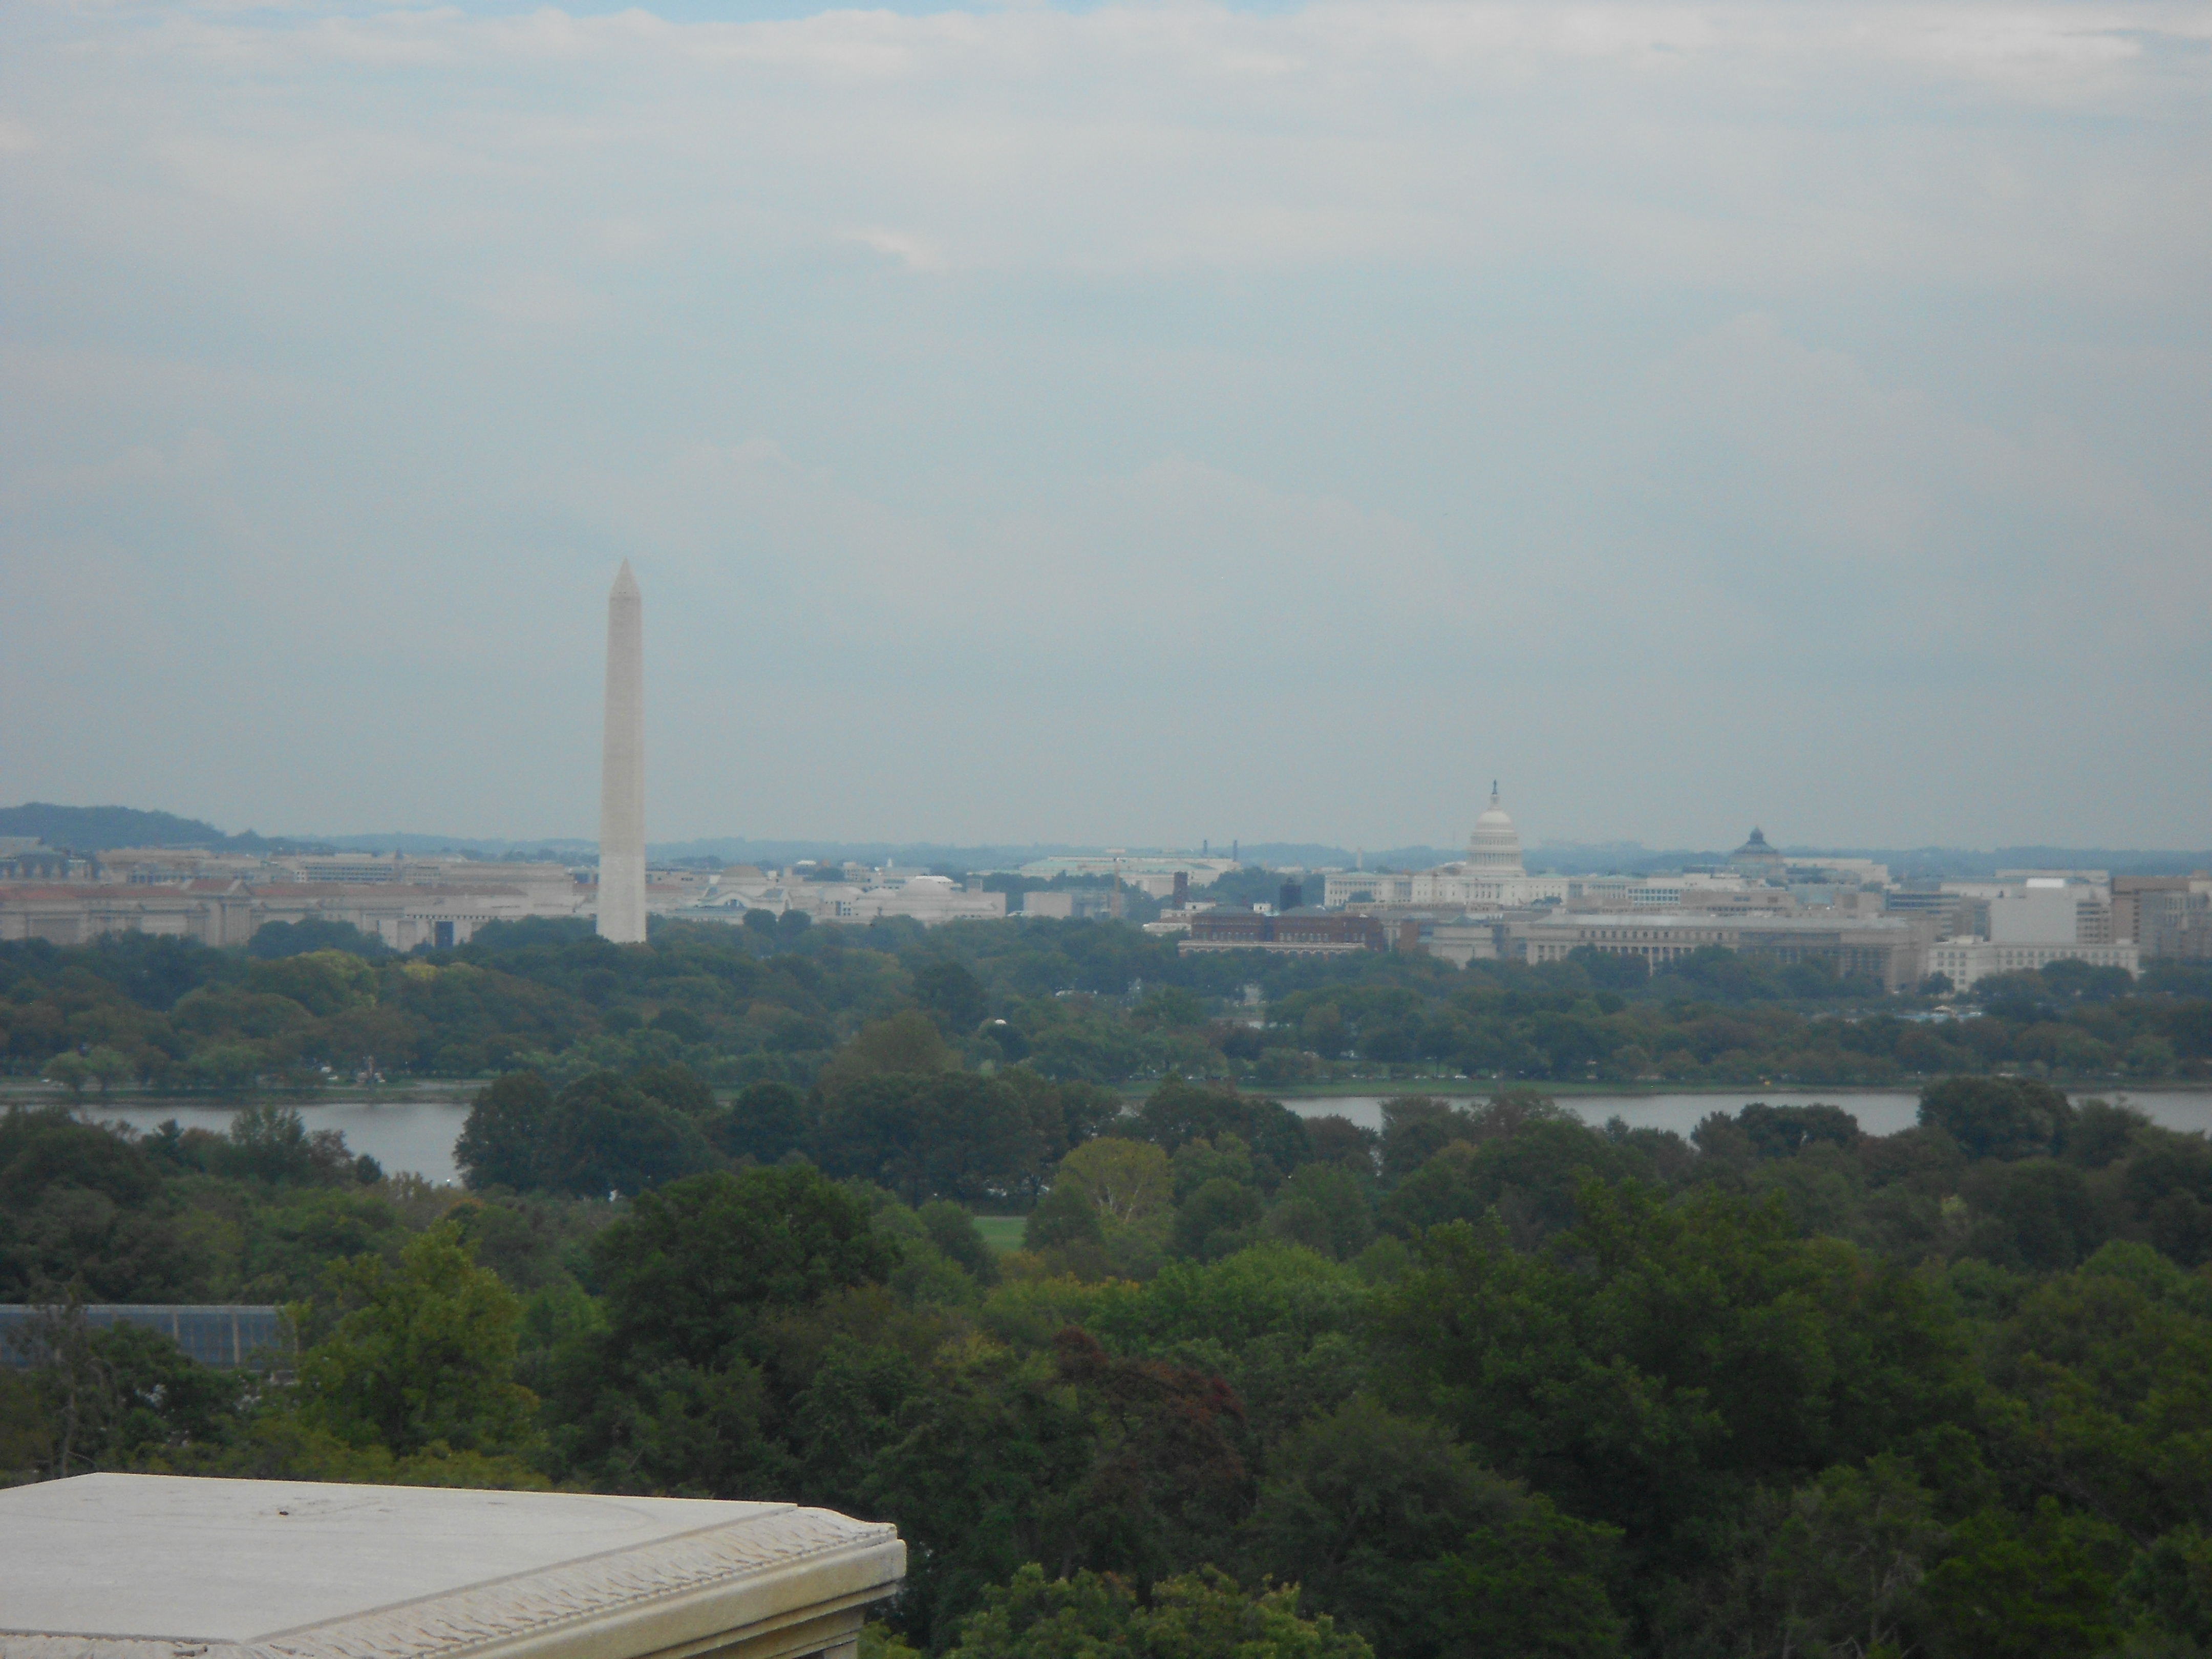 Vacation with Kids to Washington, DC